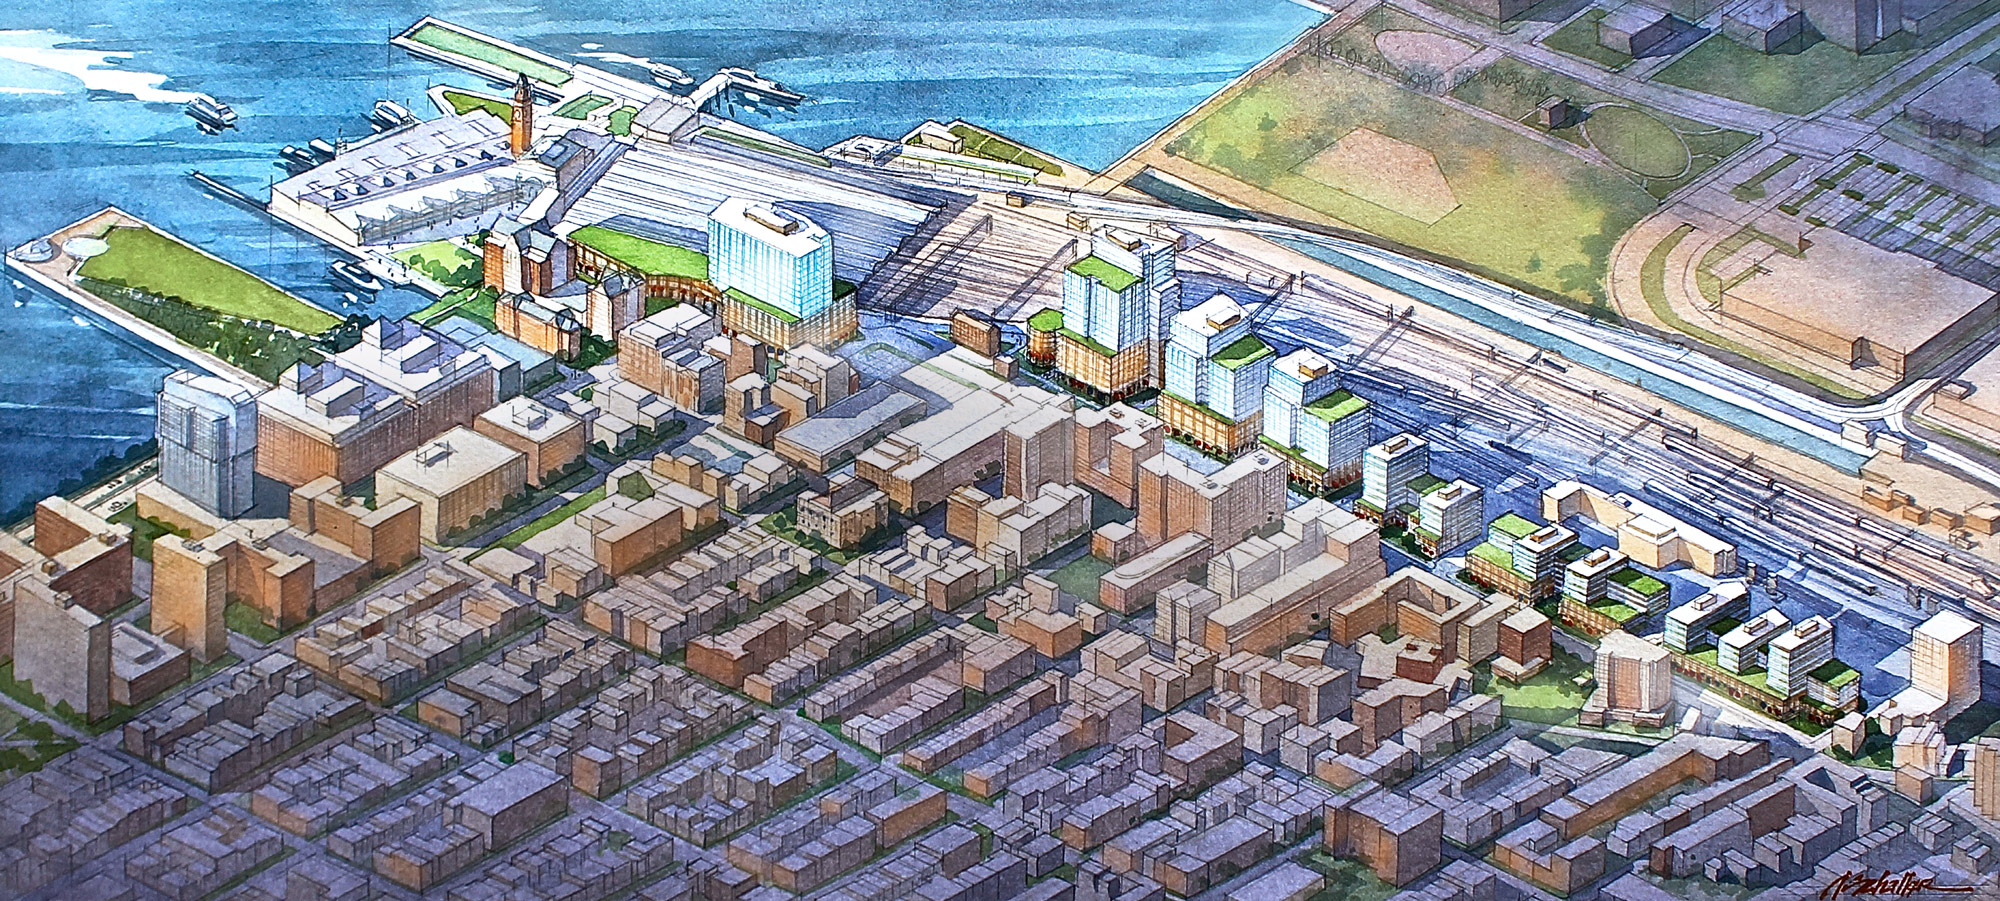 Hoboken Yards Illustrative Rendering